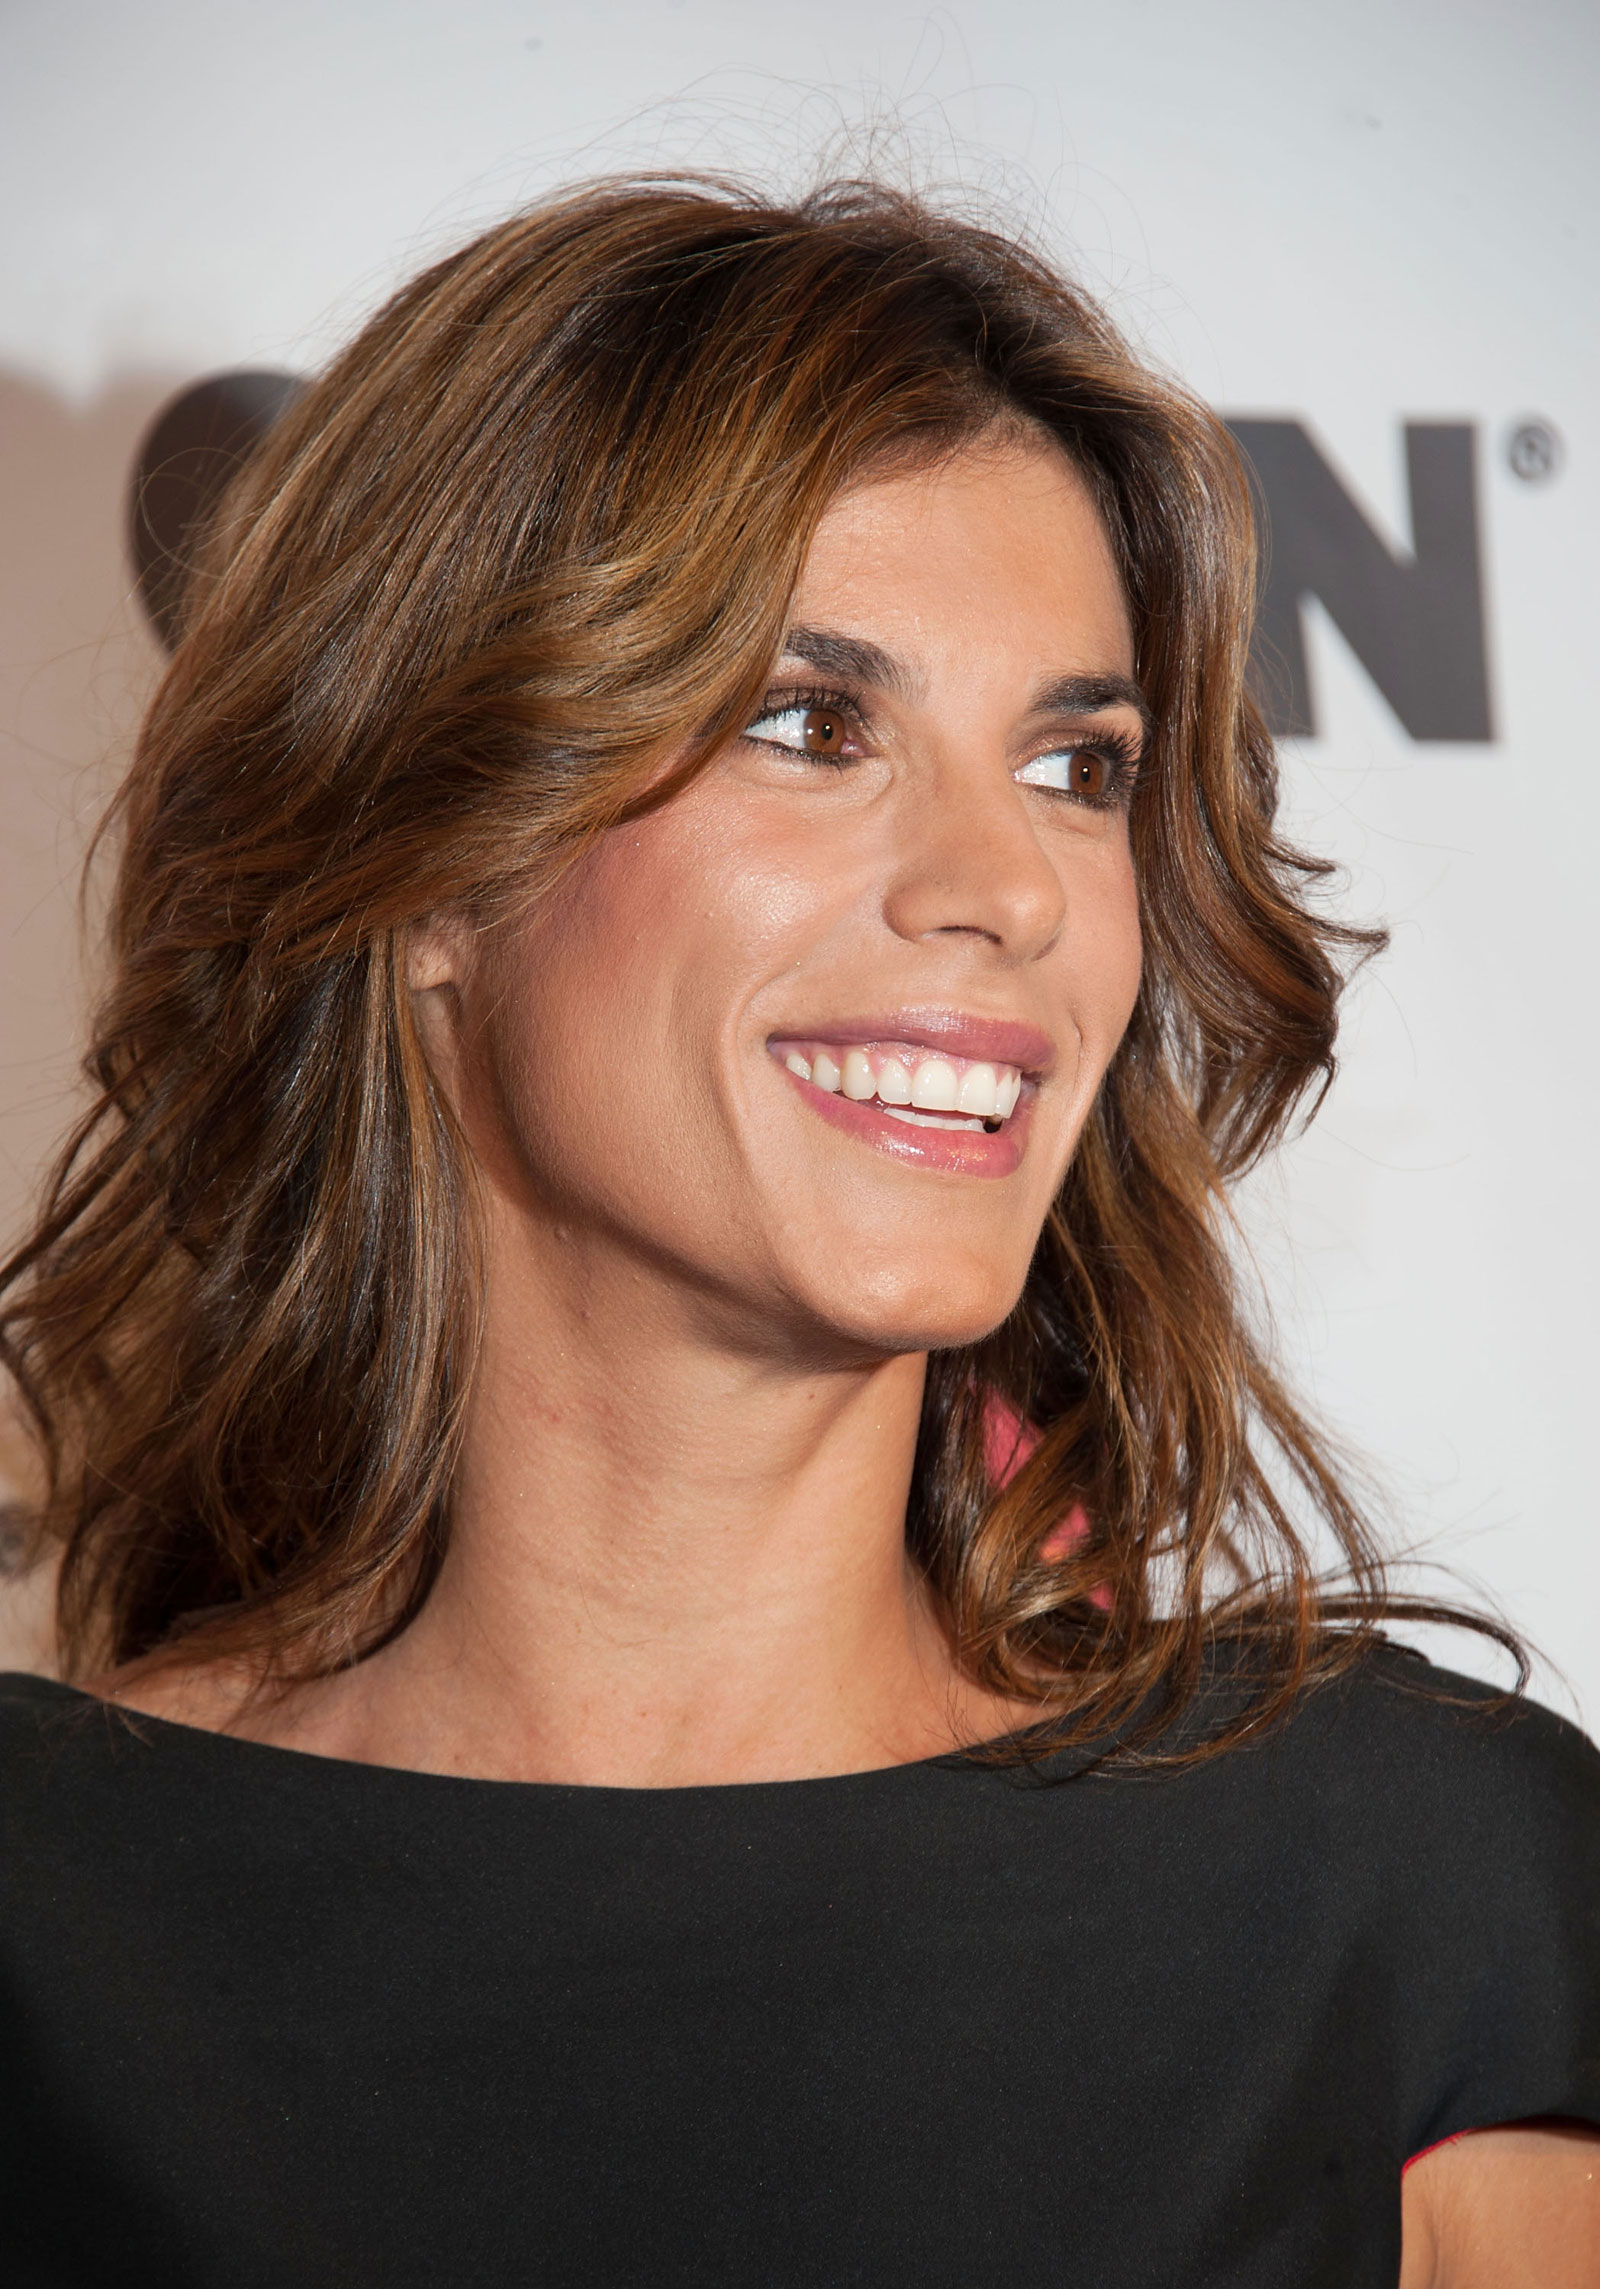 Elisabetta Canalis At The 2011 GLSEN Respect Awards